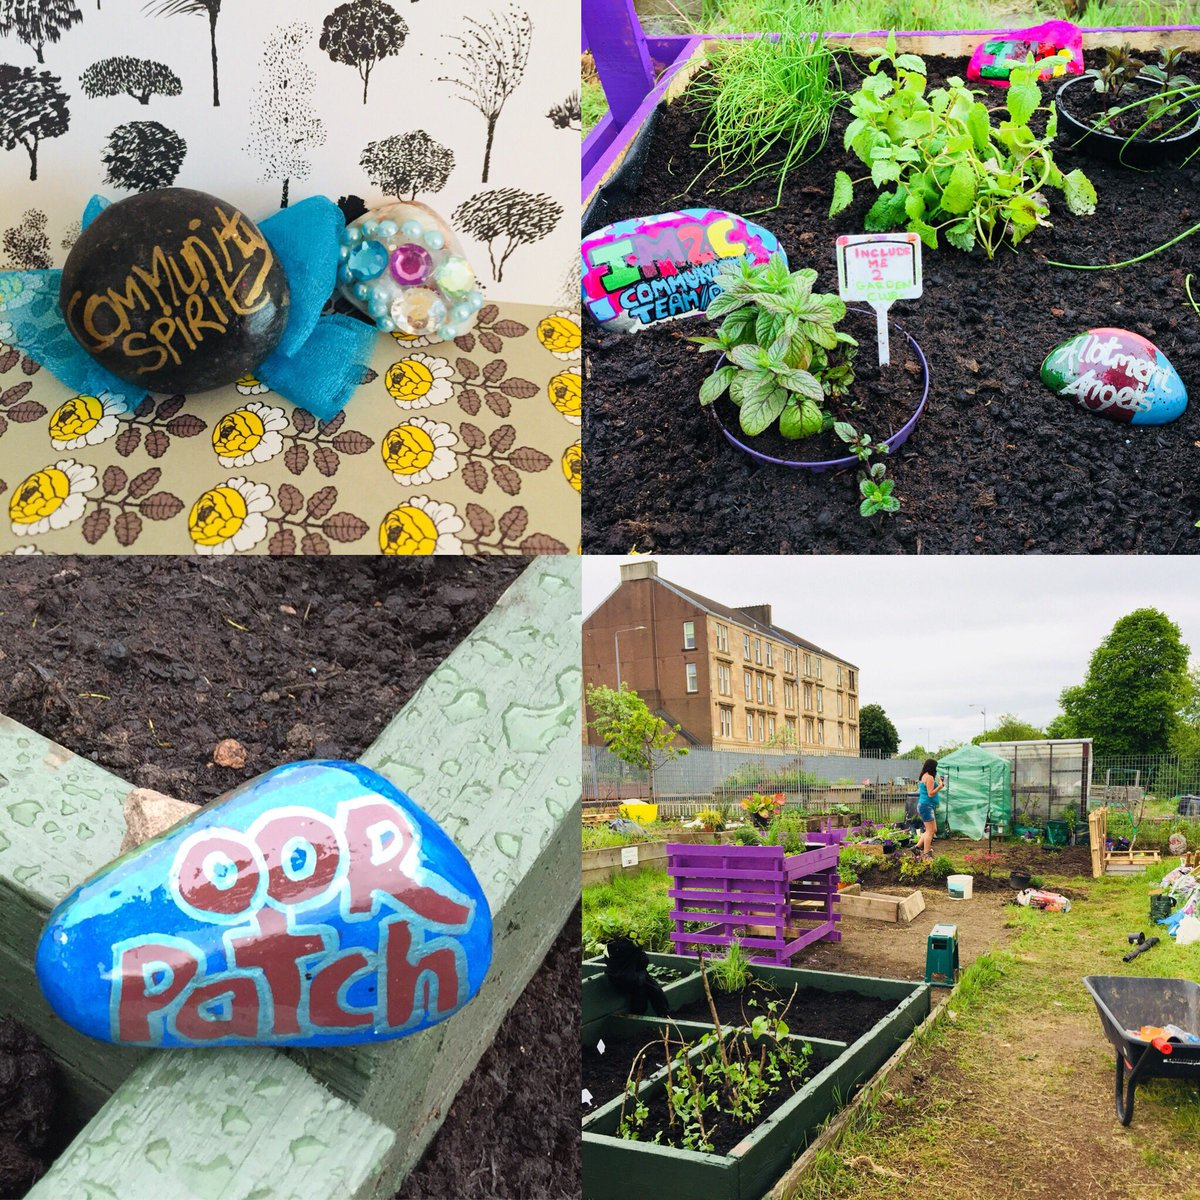 Another day at @includeme2club allotment: planting seeds, growing veggies, building community, and making friends. Thank you for the wonderful community spirit rock @lainymc2 and for the continued inspiring work you do @Suzieq1402 !#Glasgow  #GardenKaraoke<br>http://pic.twitter.com/rnsqK1Y27i